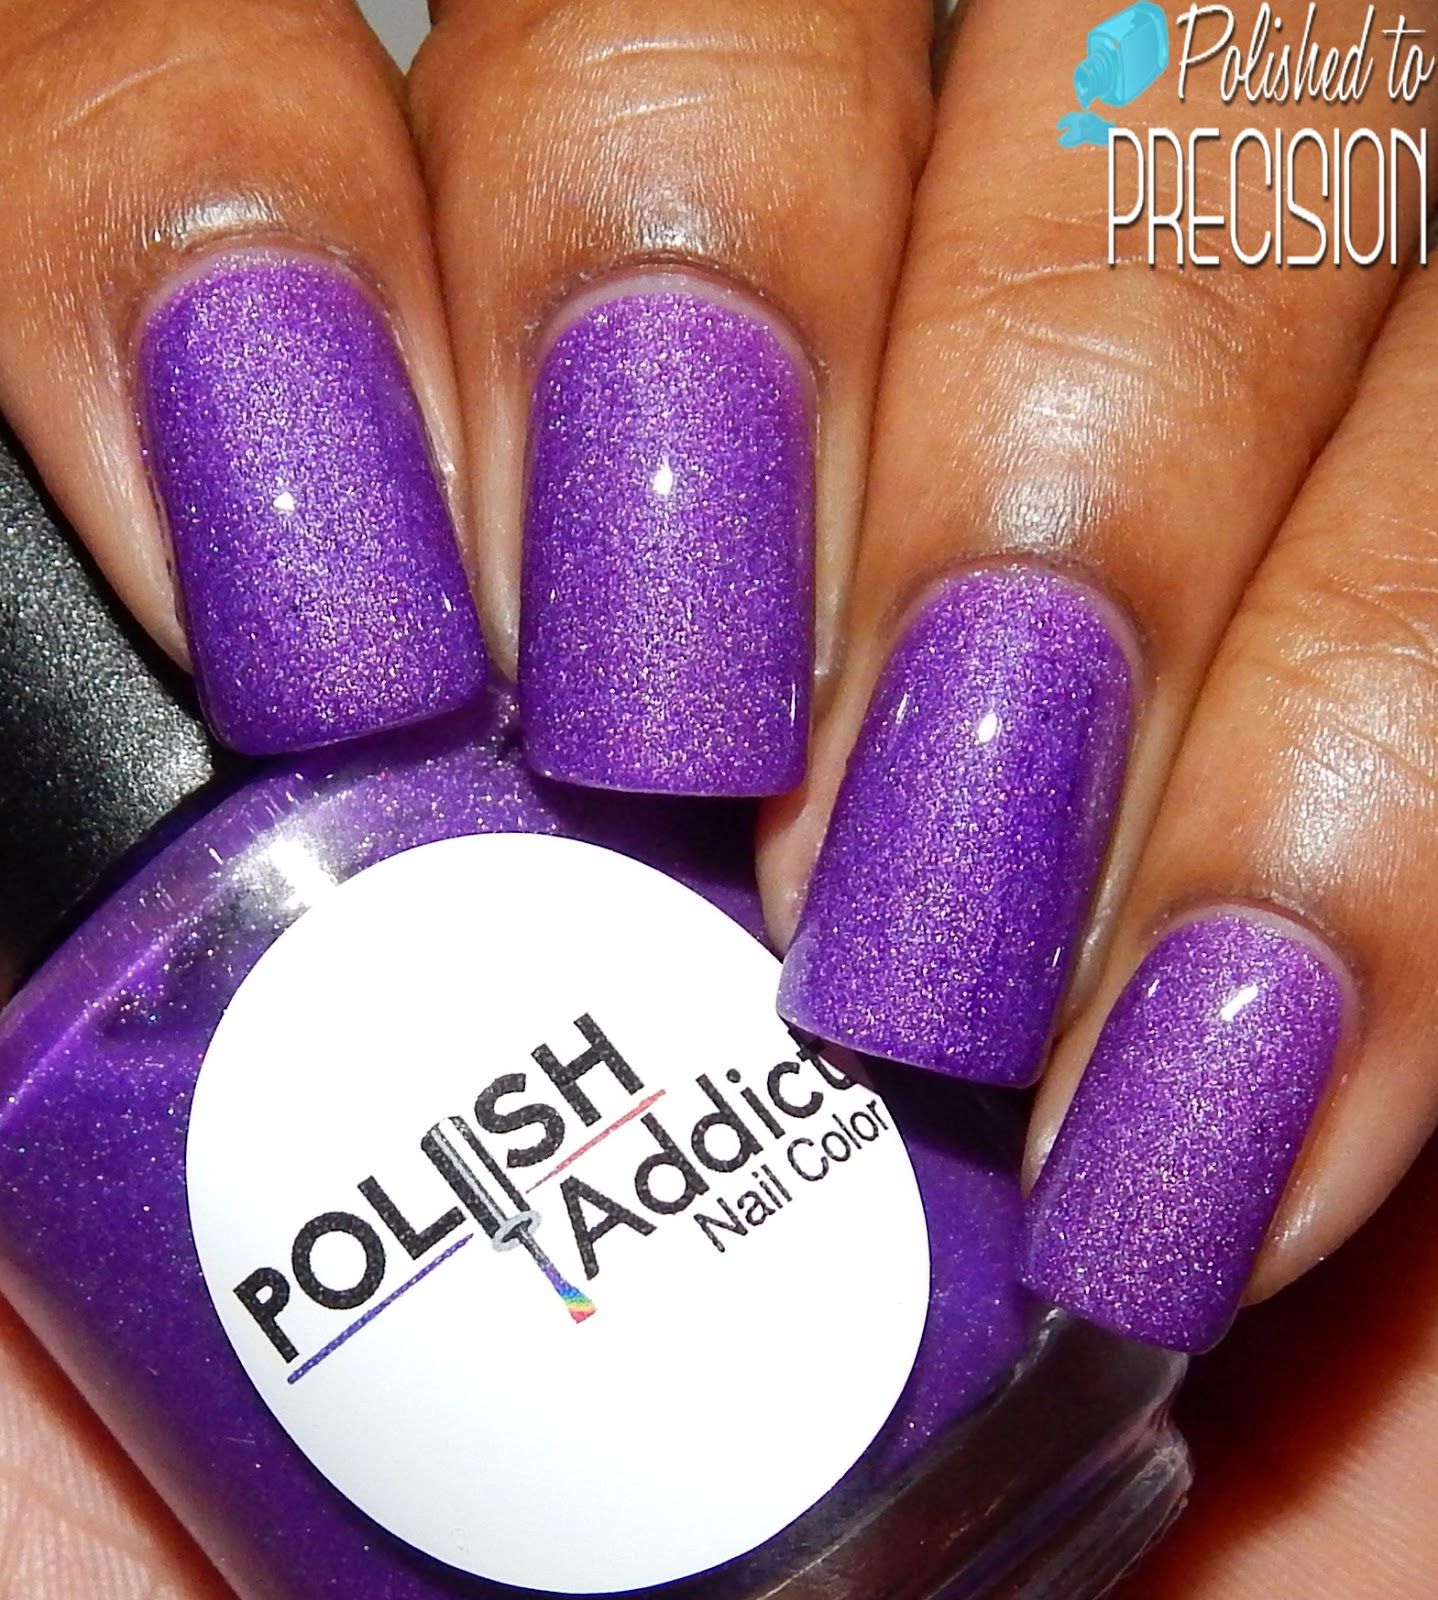 Polish Addict Nail Color Polished to Precision